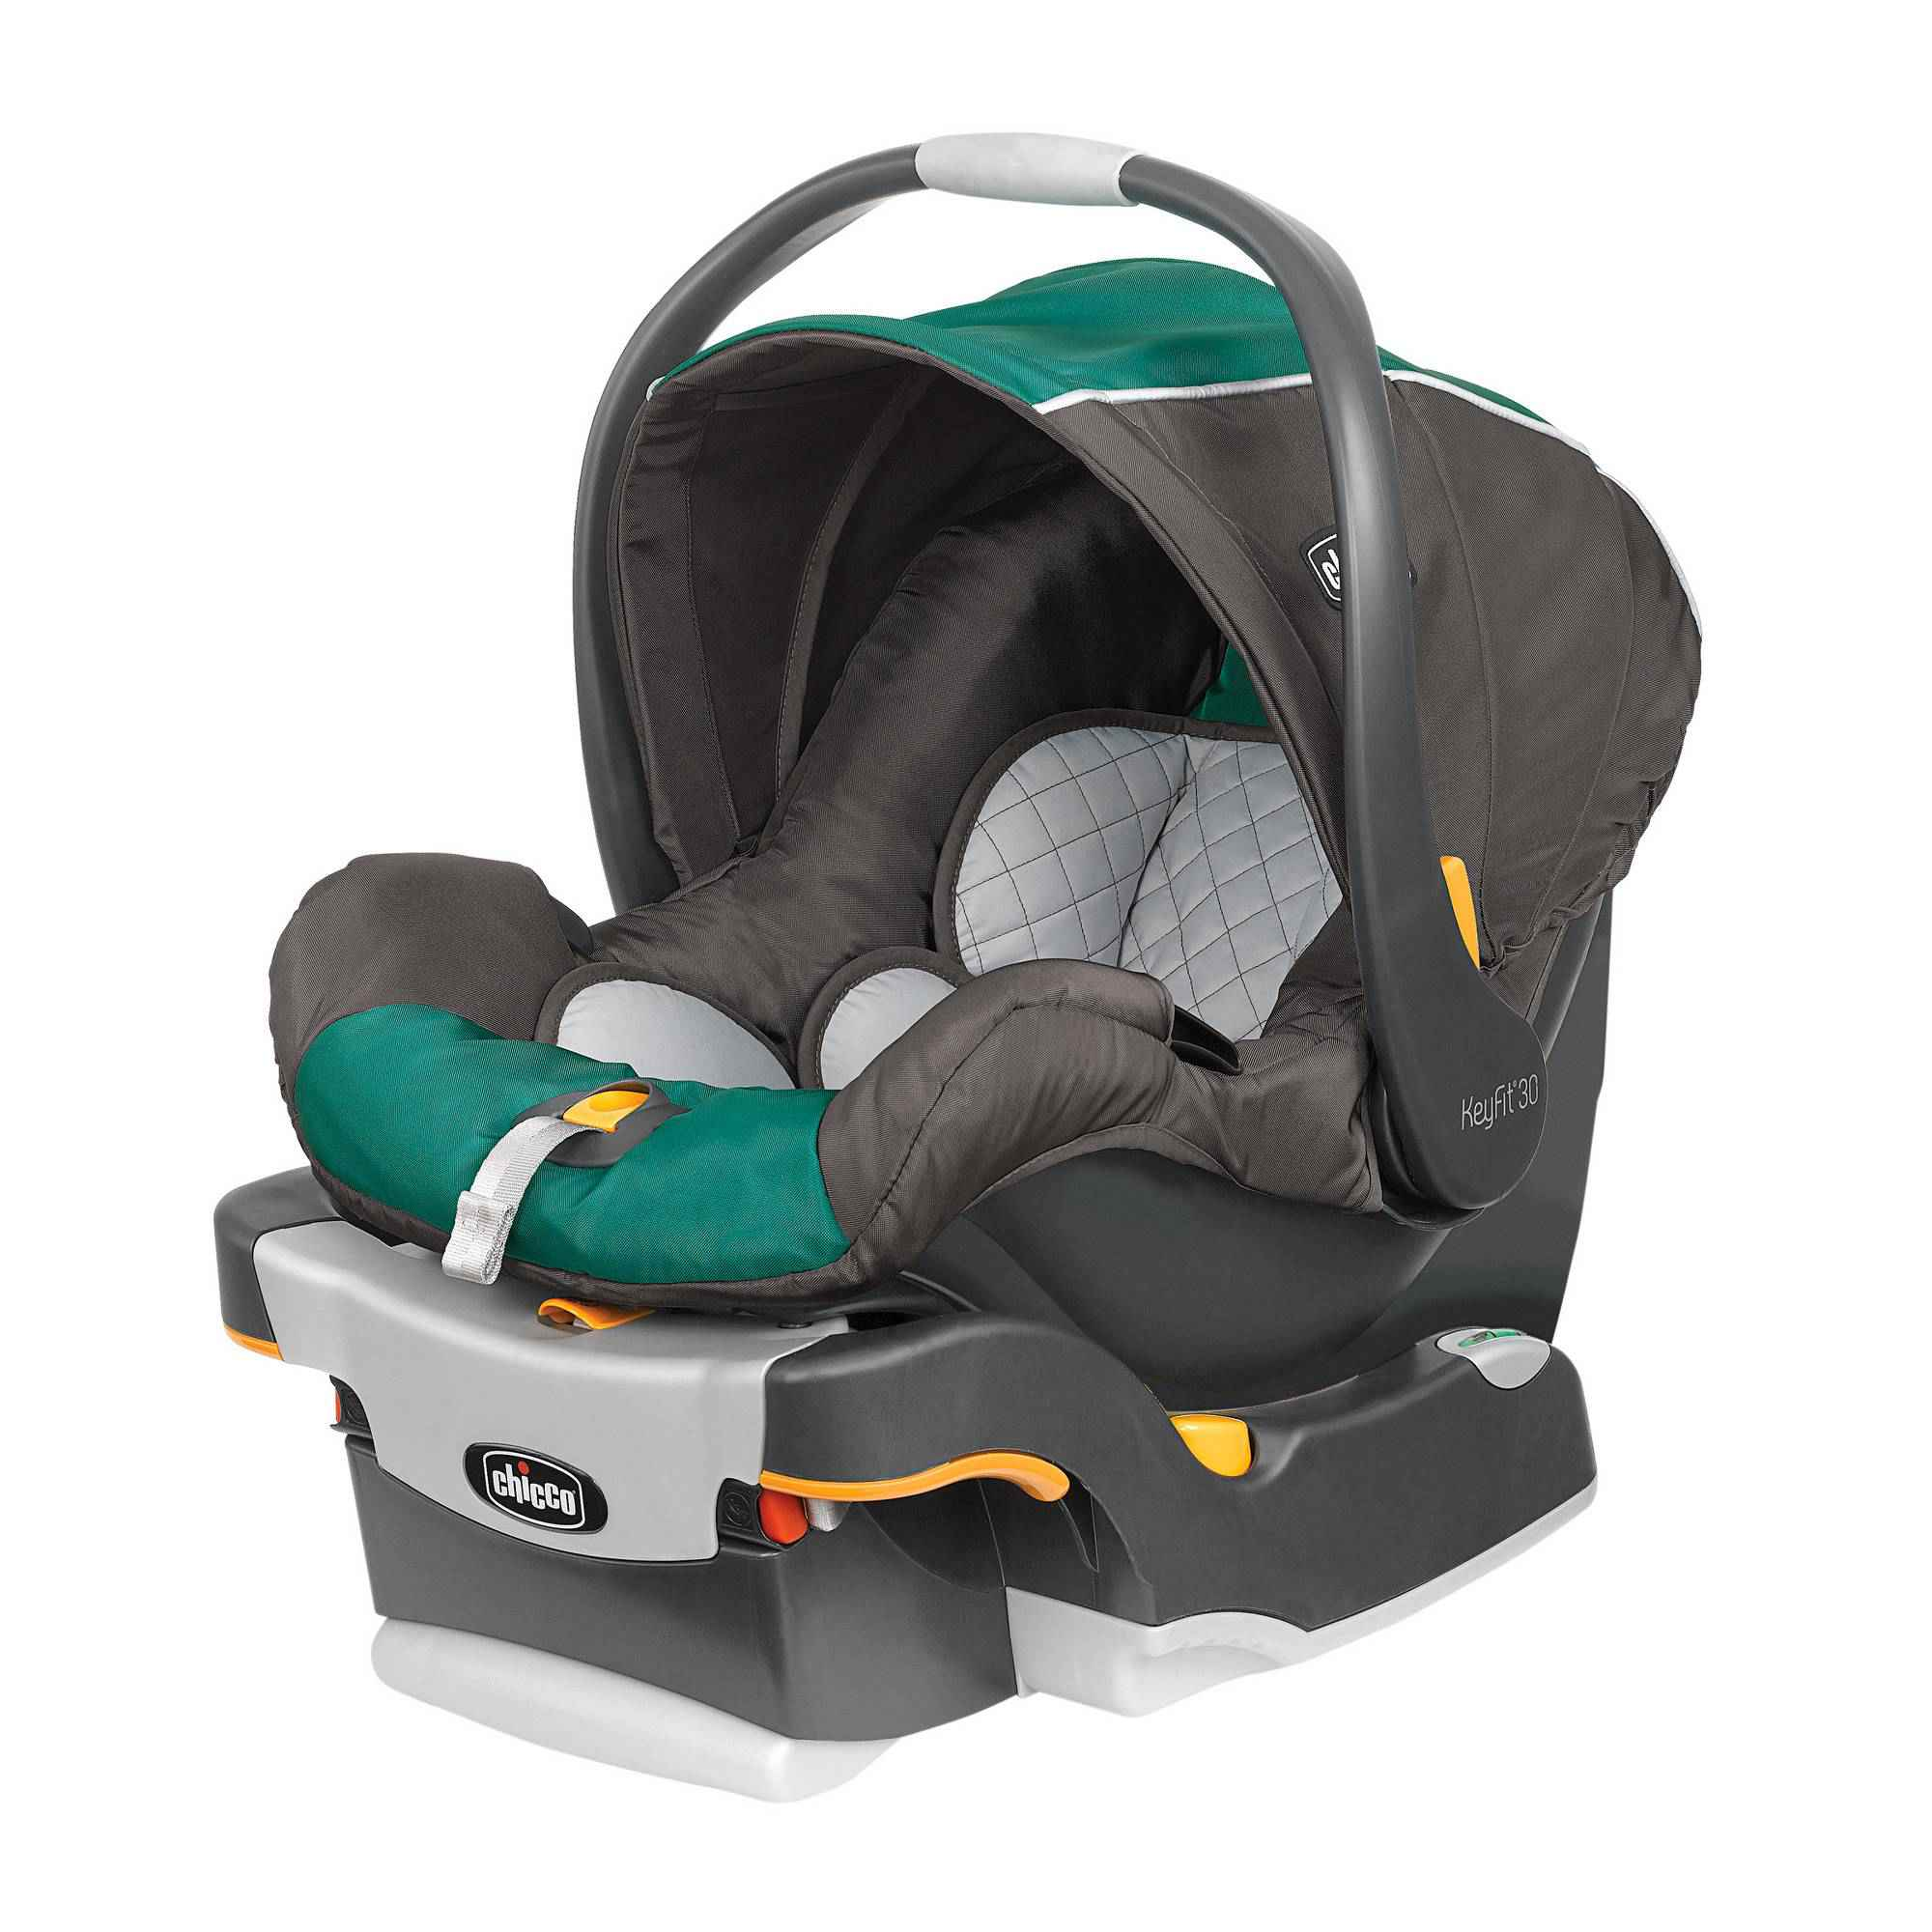 ChiccoKeyFit30InfantCarSeat 5a2084b00c1a ad37